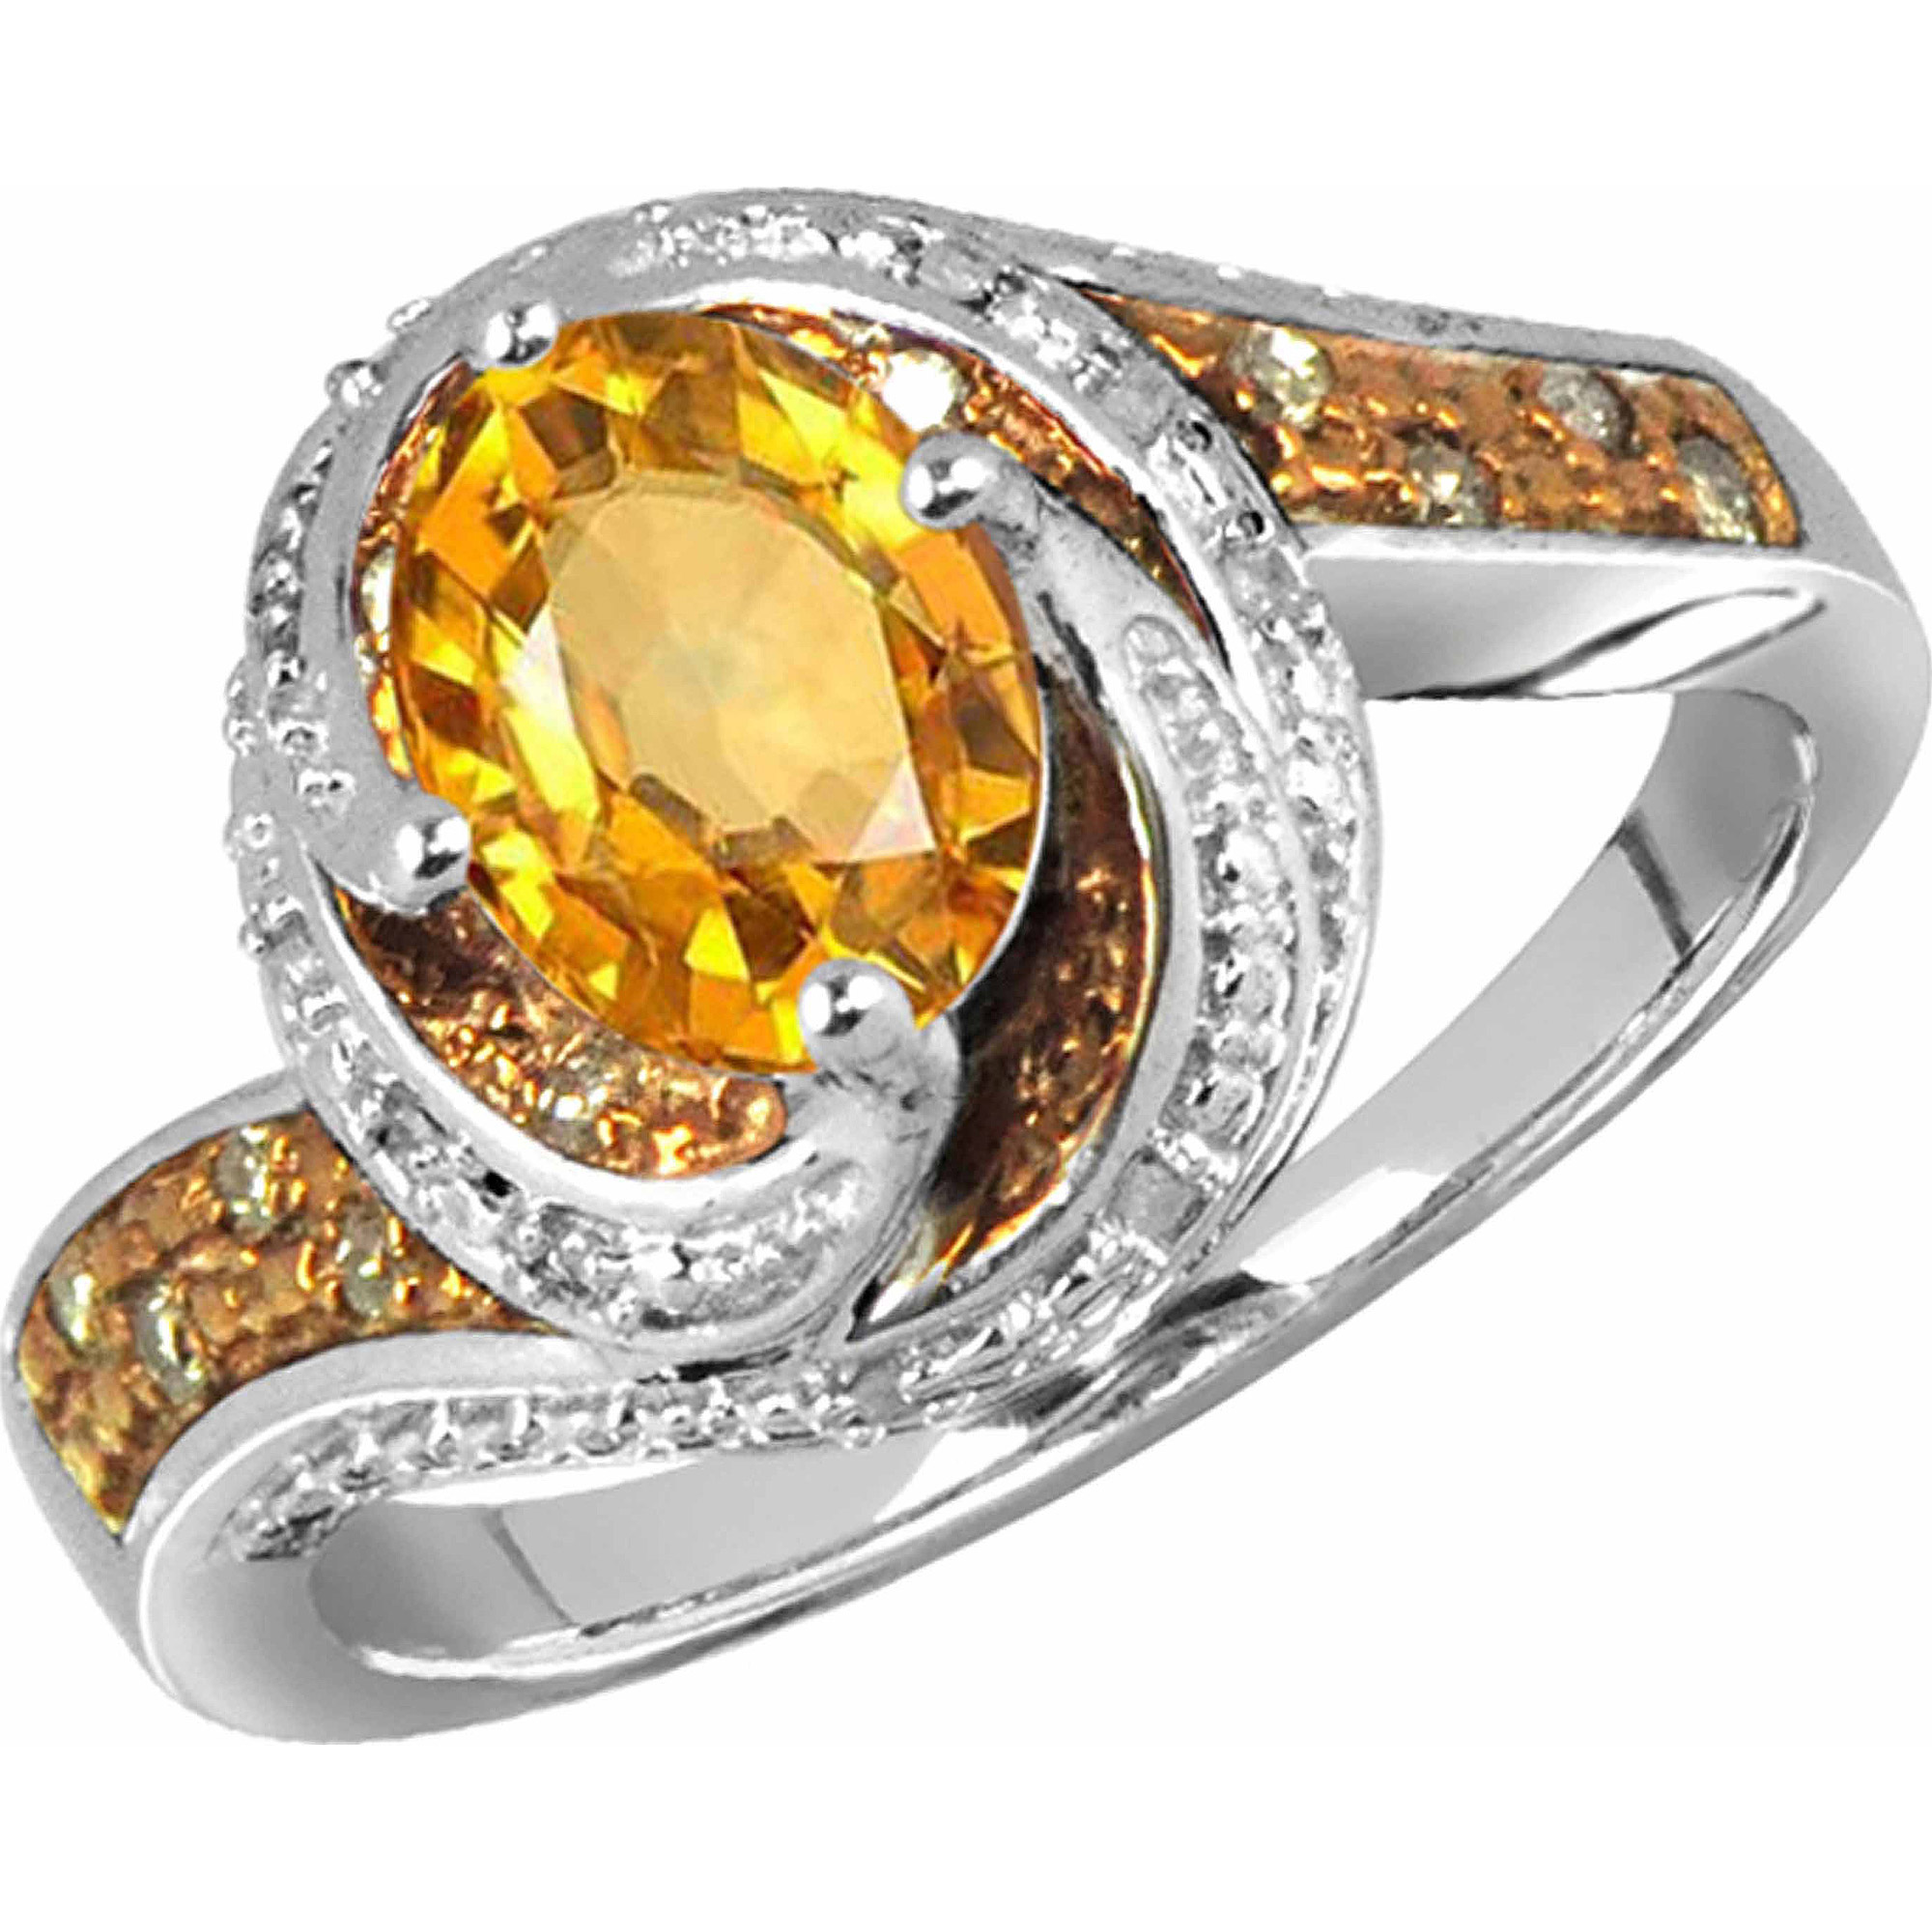 JewelersClub 1.11 Carat T.G.W. Citrine Gemstone & 1/10 Carat T.W. Champagne & White Diamond Ring in Sterling Silver